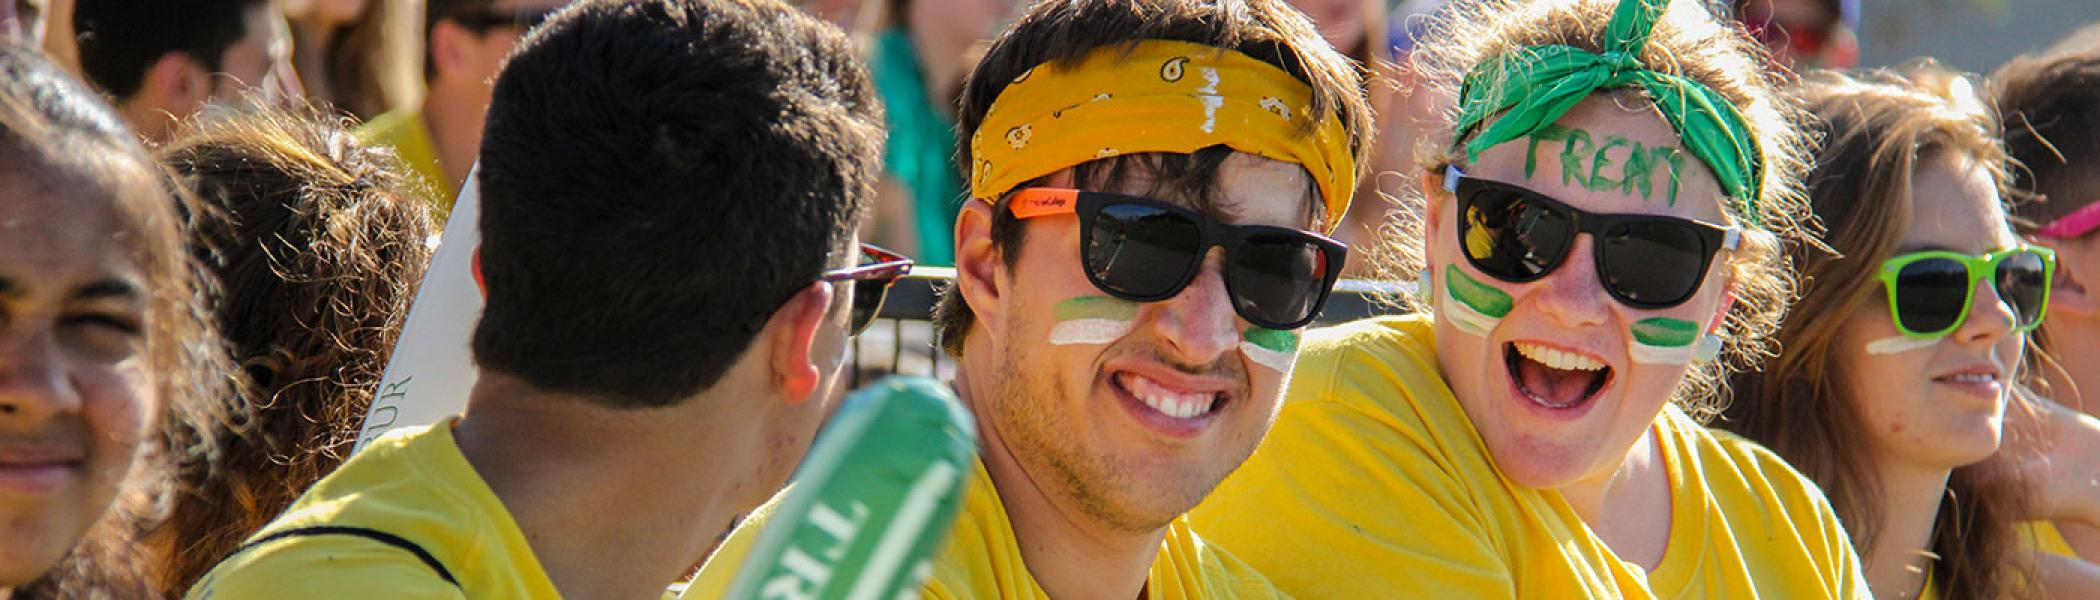 2 Students sitting in a crowd of students smiling at the camera during introductory seminar week, wearing sunglasses and face paint